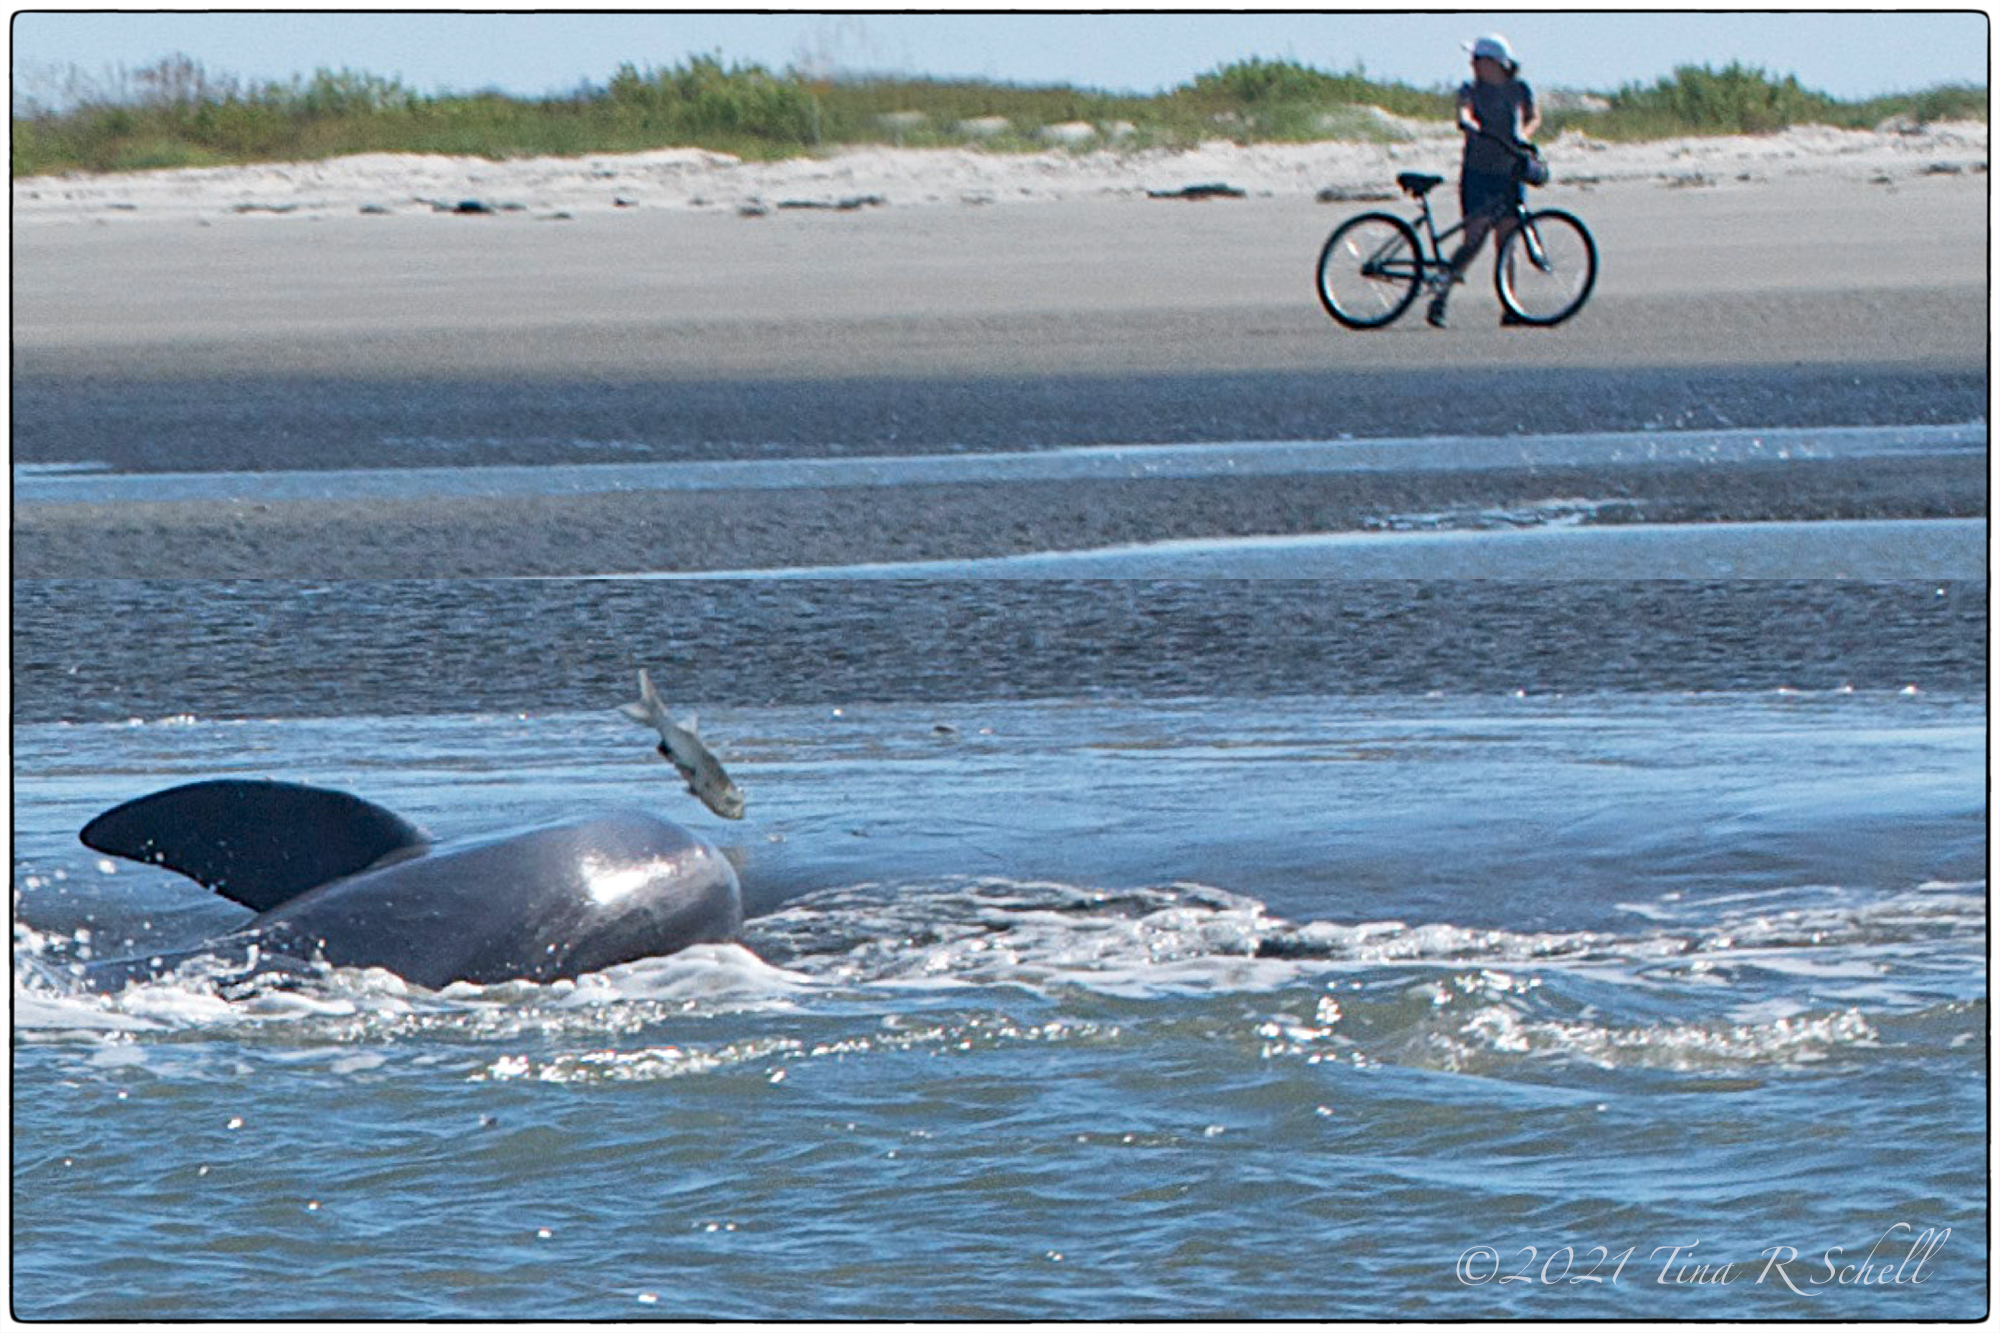 dolphin, fish, ocean, bicycle